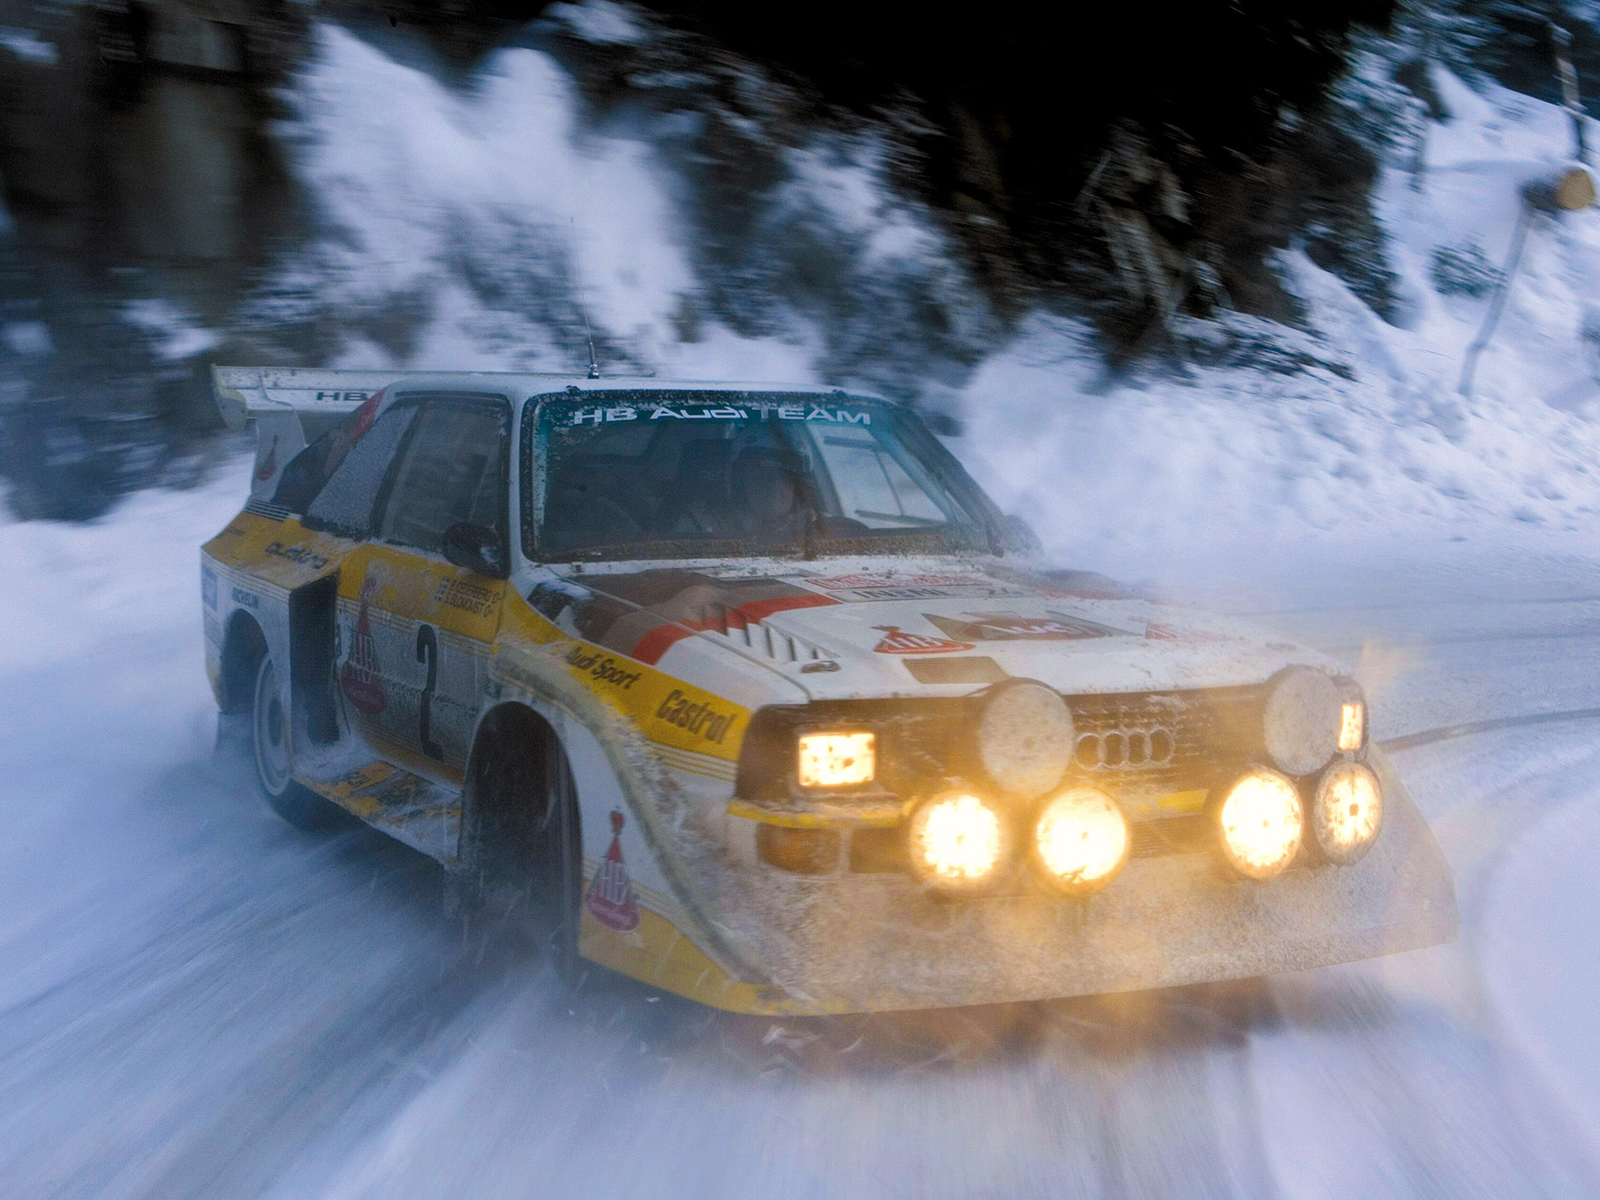 Sport Quattro S1 Group B Rally Car Wallpapers Cool Cars Wallpaper 1600x1200